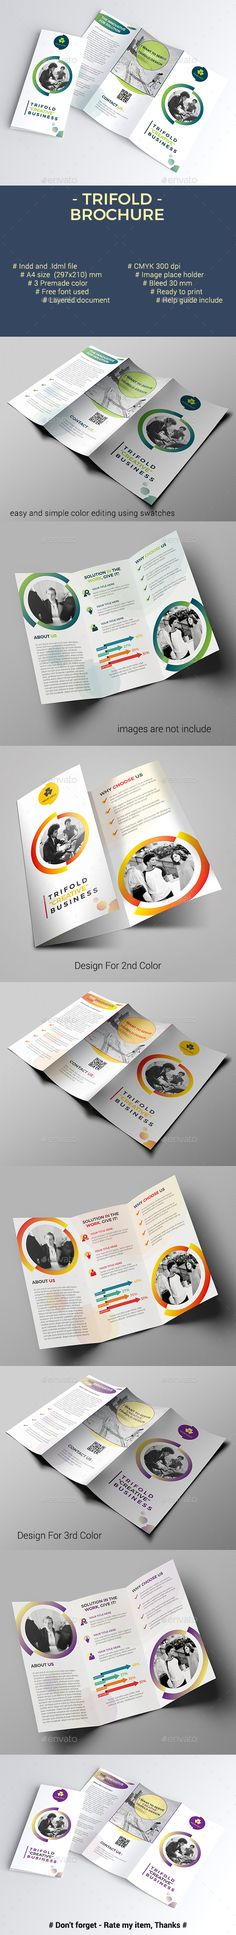 brochure â 20restaurant tri fold by artbart this is a brochure for